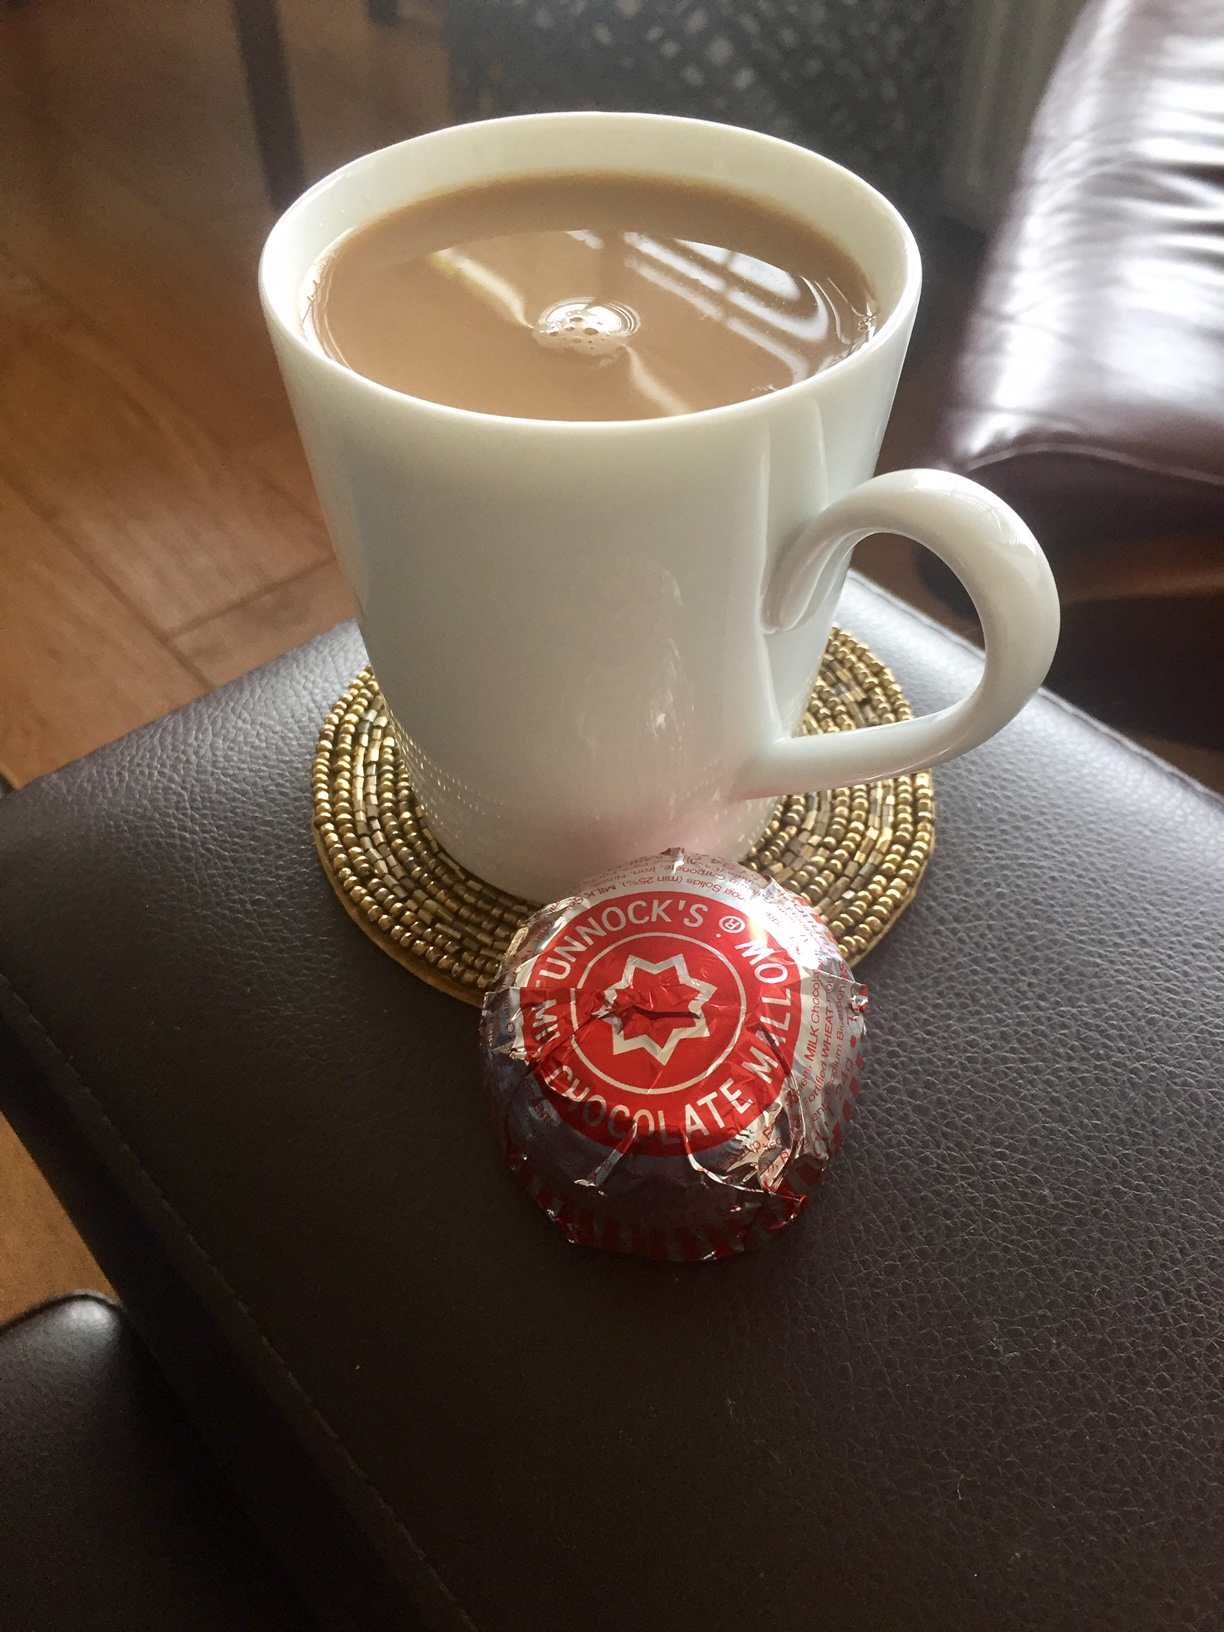 TunnocksTeacake